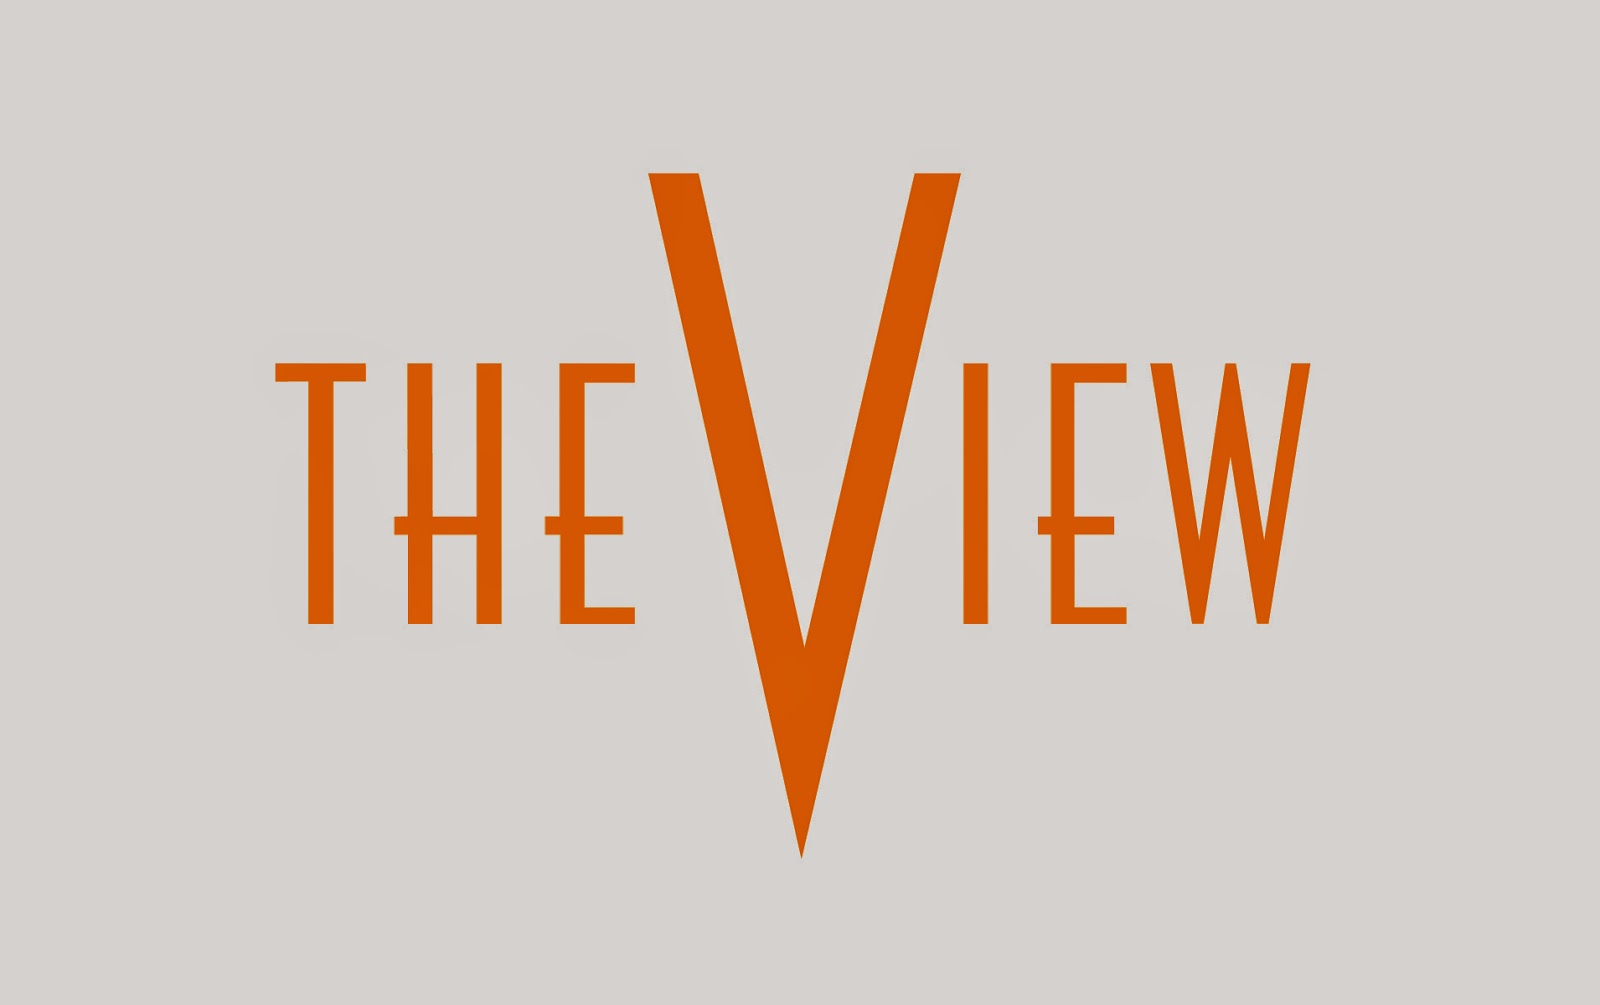 ABC's The View will bring b ack all 11 co-hosts in tribute to Barbara Walters